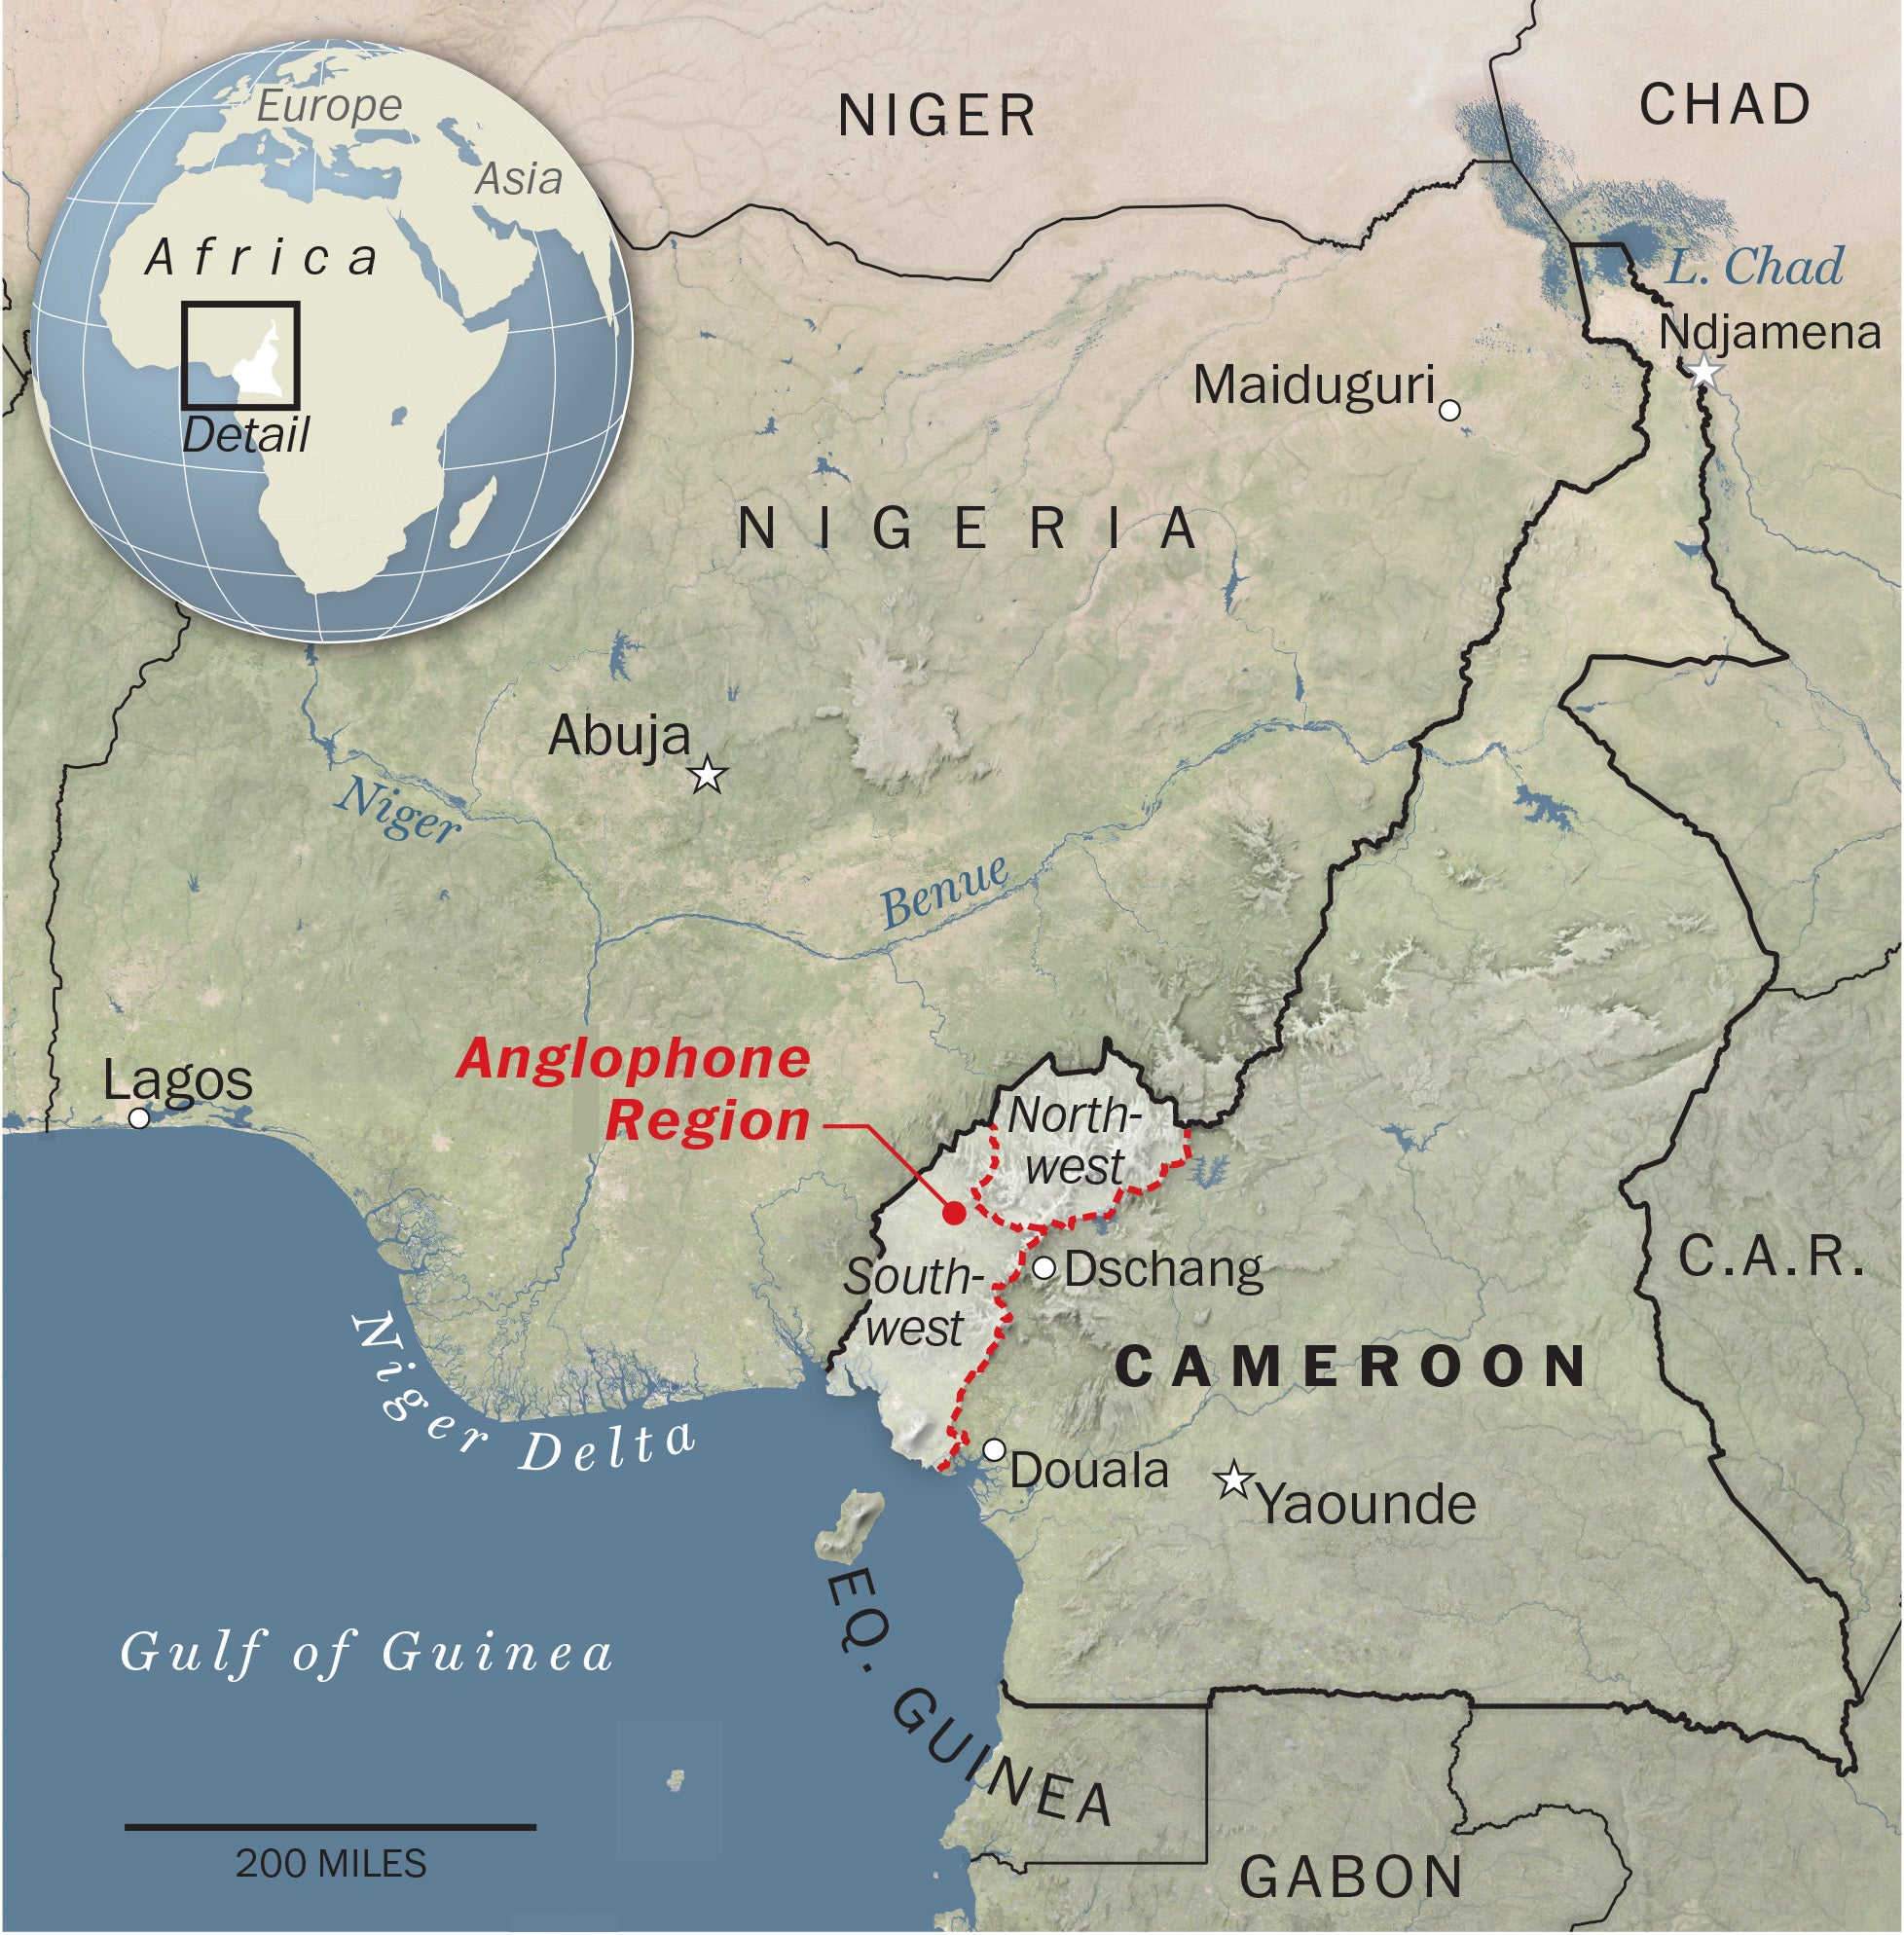 War of words: Cameroon being torn apart by deadly language ...